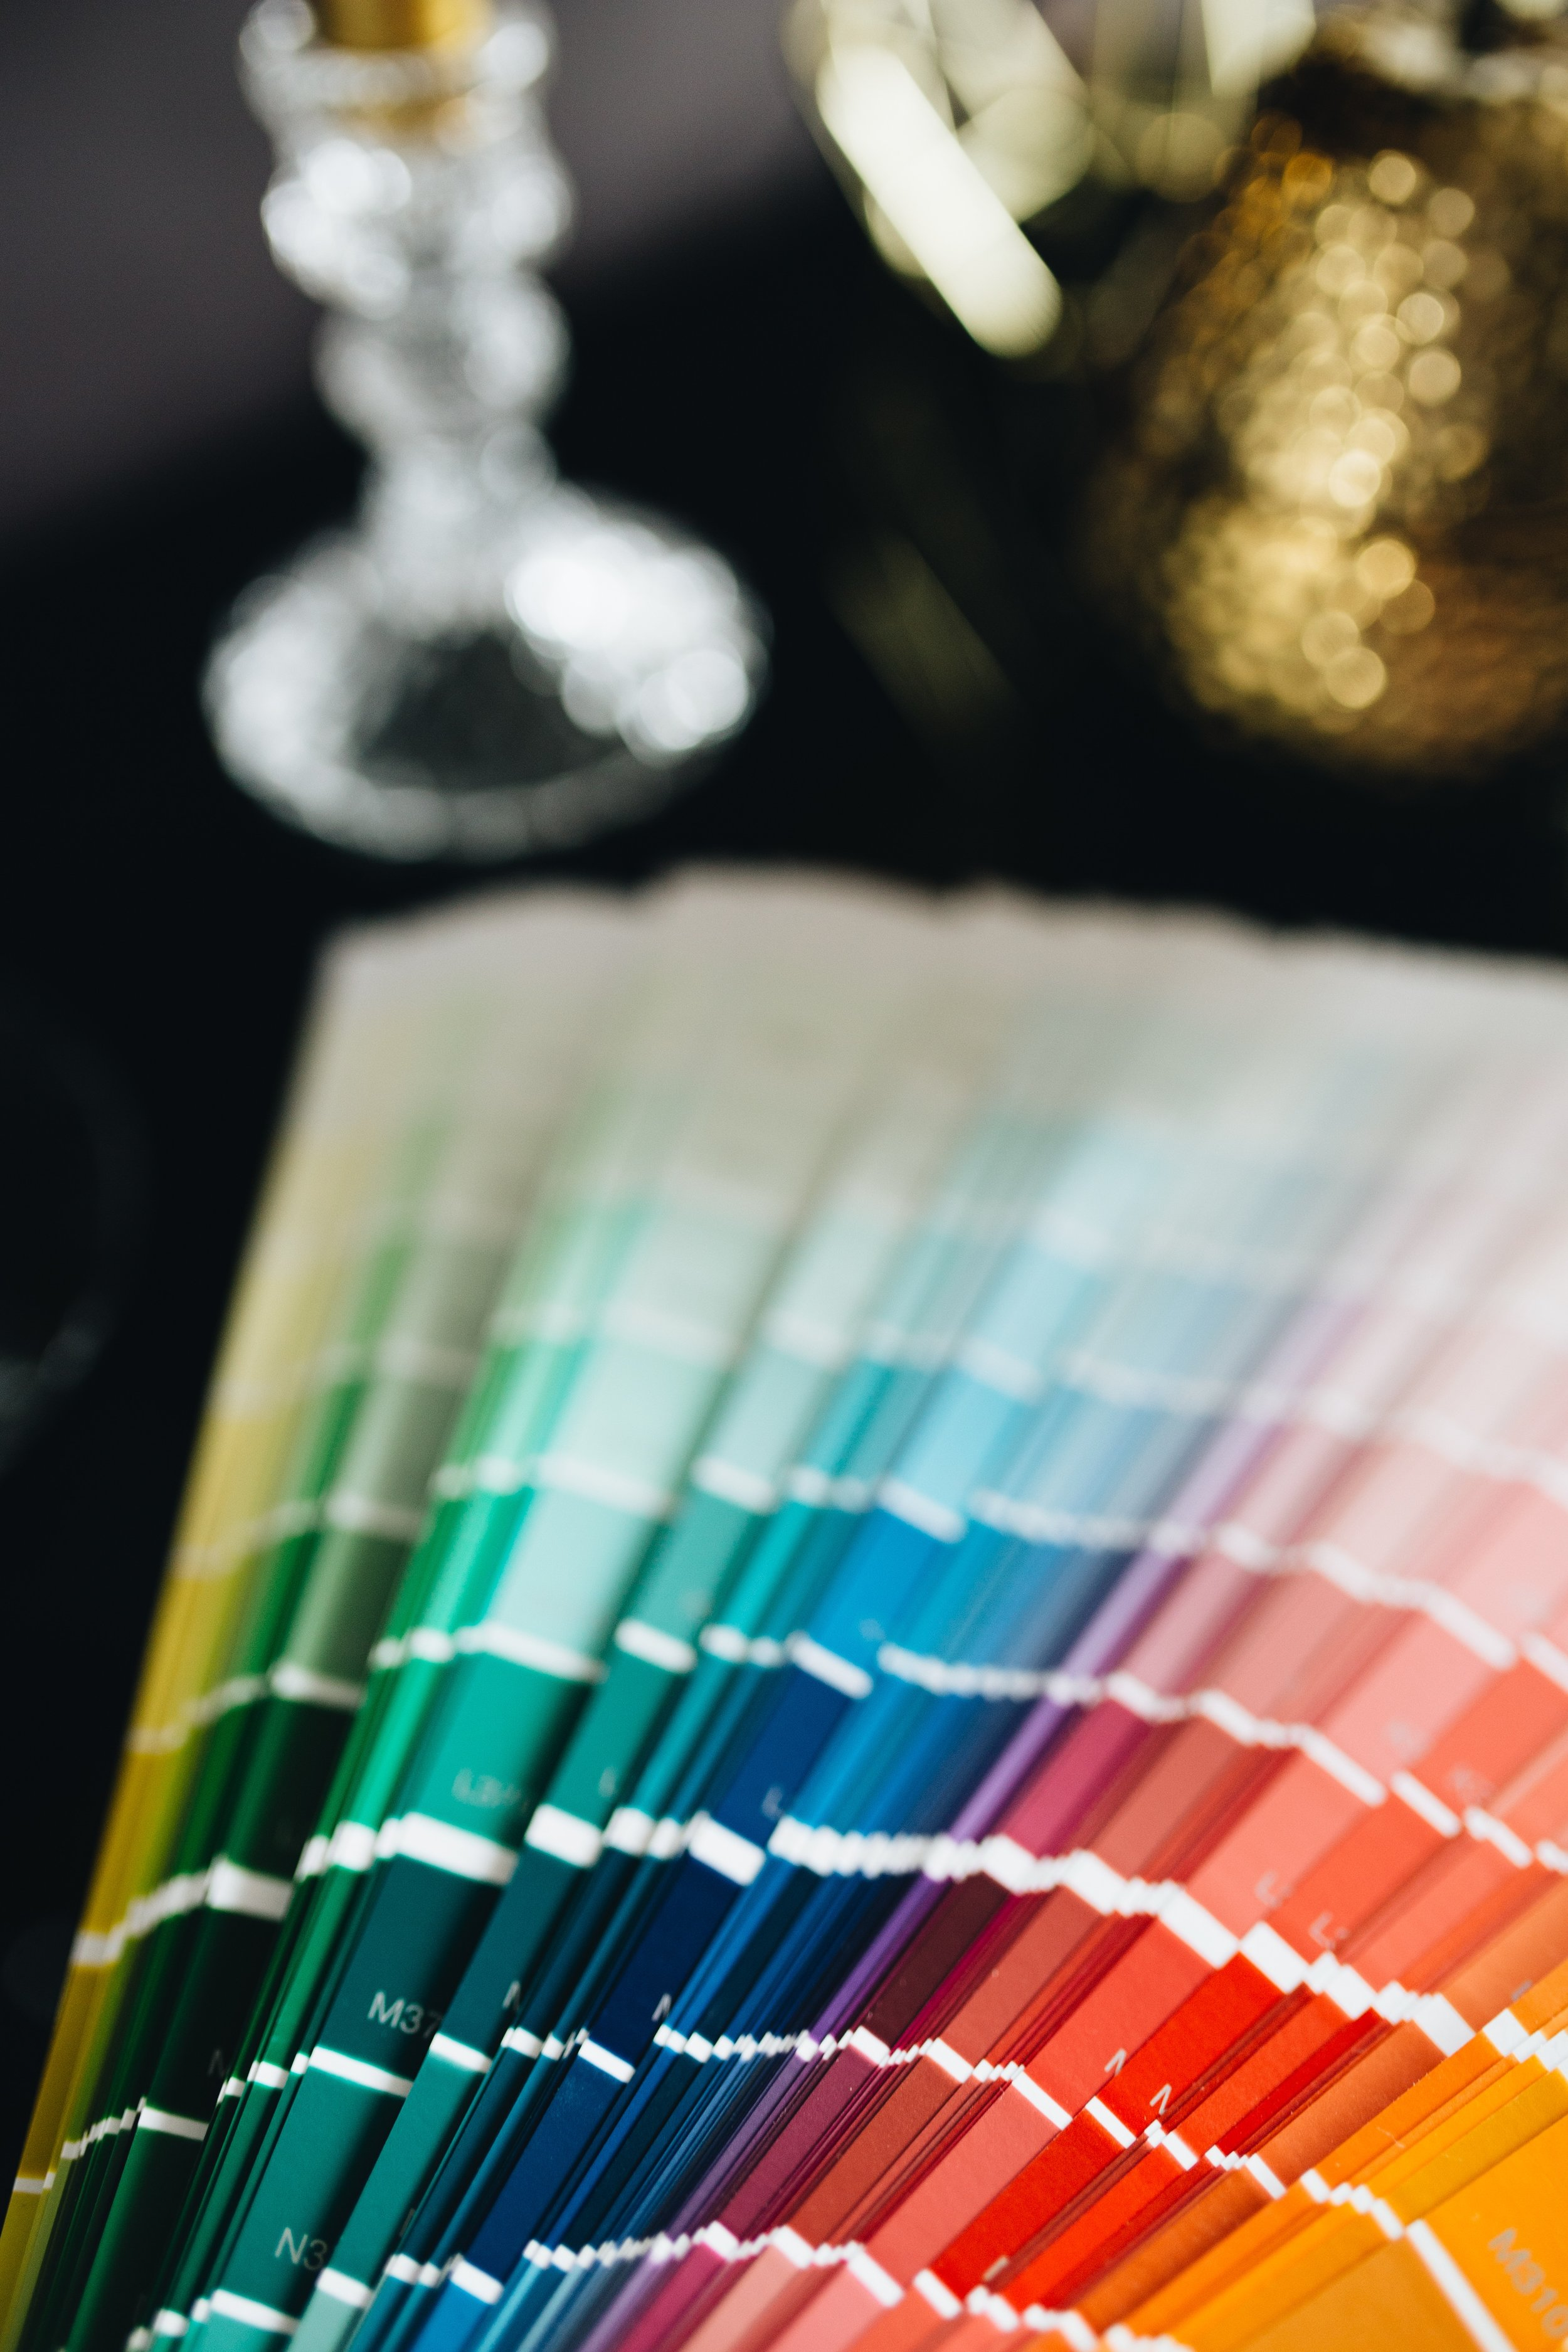 Our colour and design options will impress you and expertly helping you with  your choices  to match your personal style.